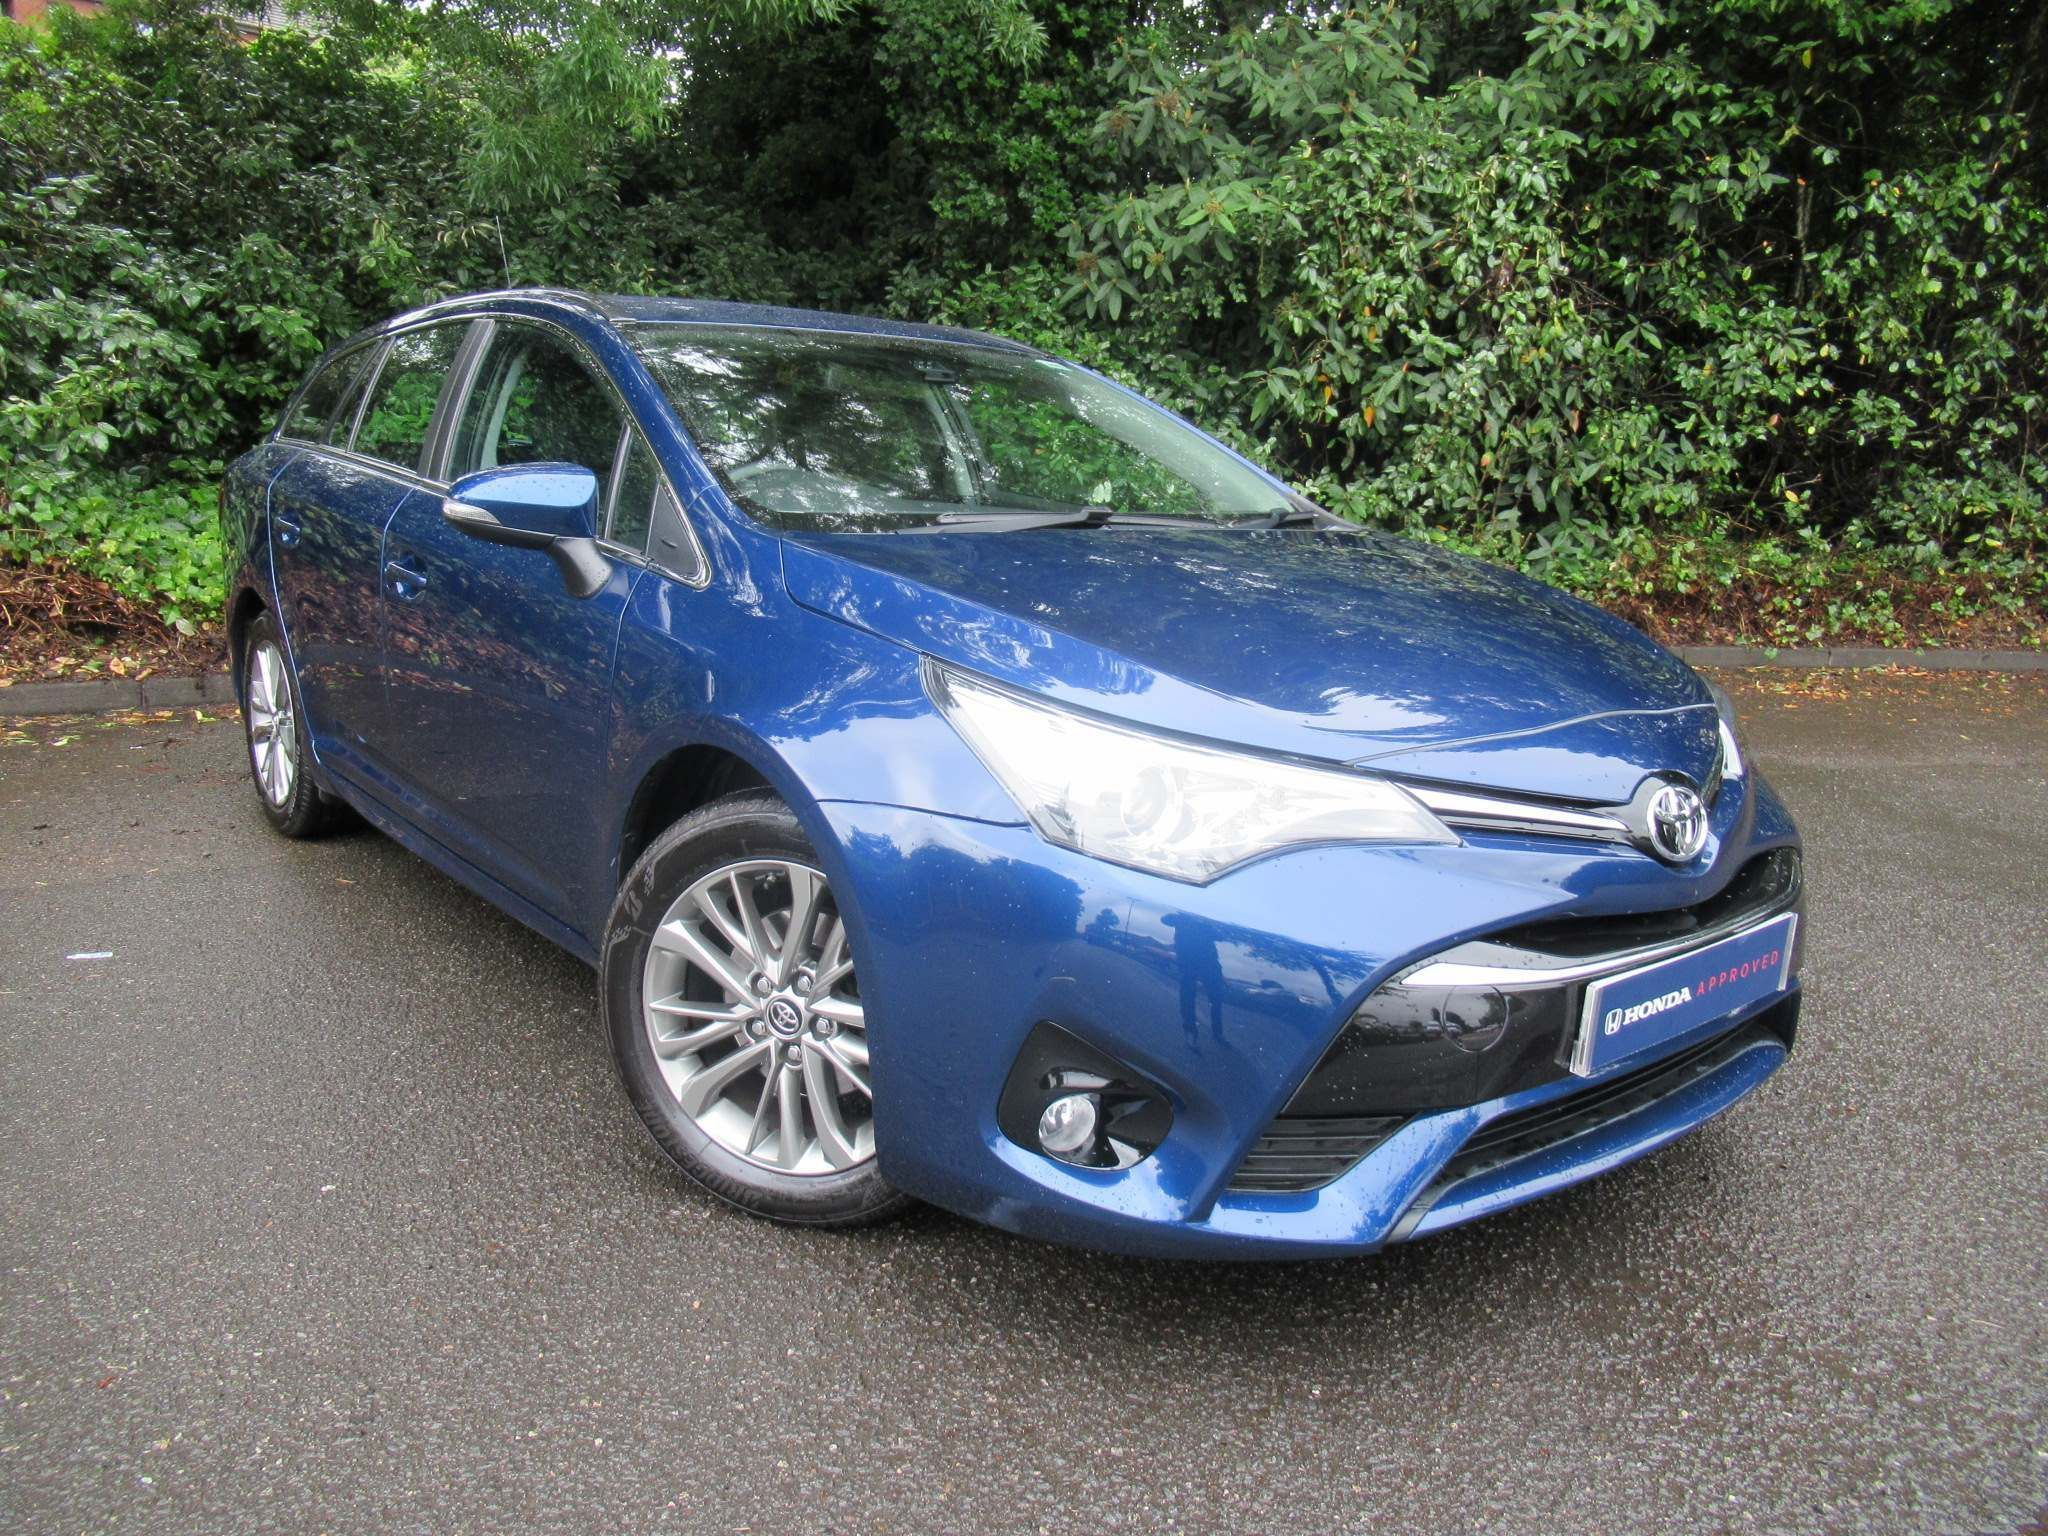 Toyota Avensis 1.8 V-matic Business Edition Touring Sports CVT 5dr